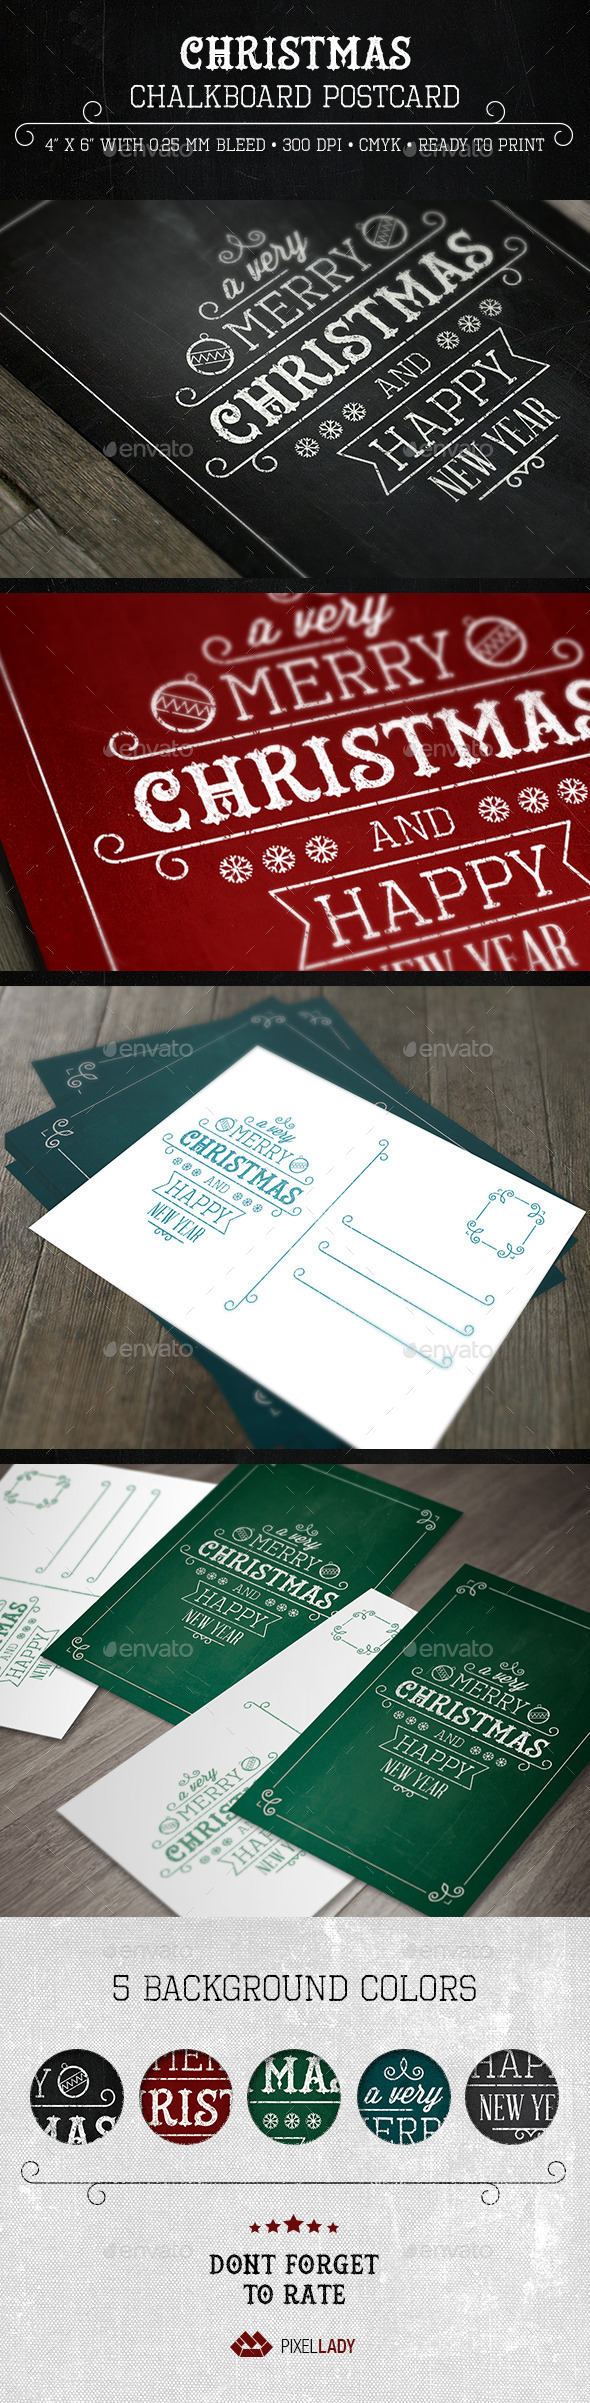 GraphicRiver Christmas Chalkboard Postcard 9498822